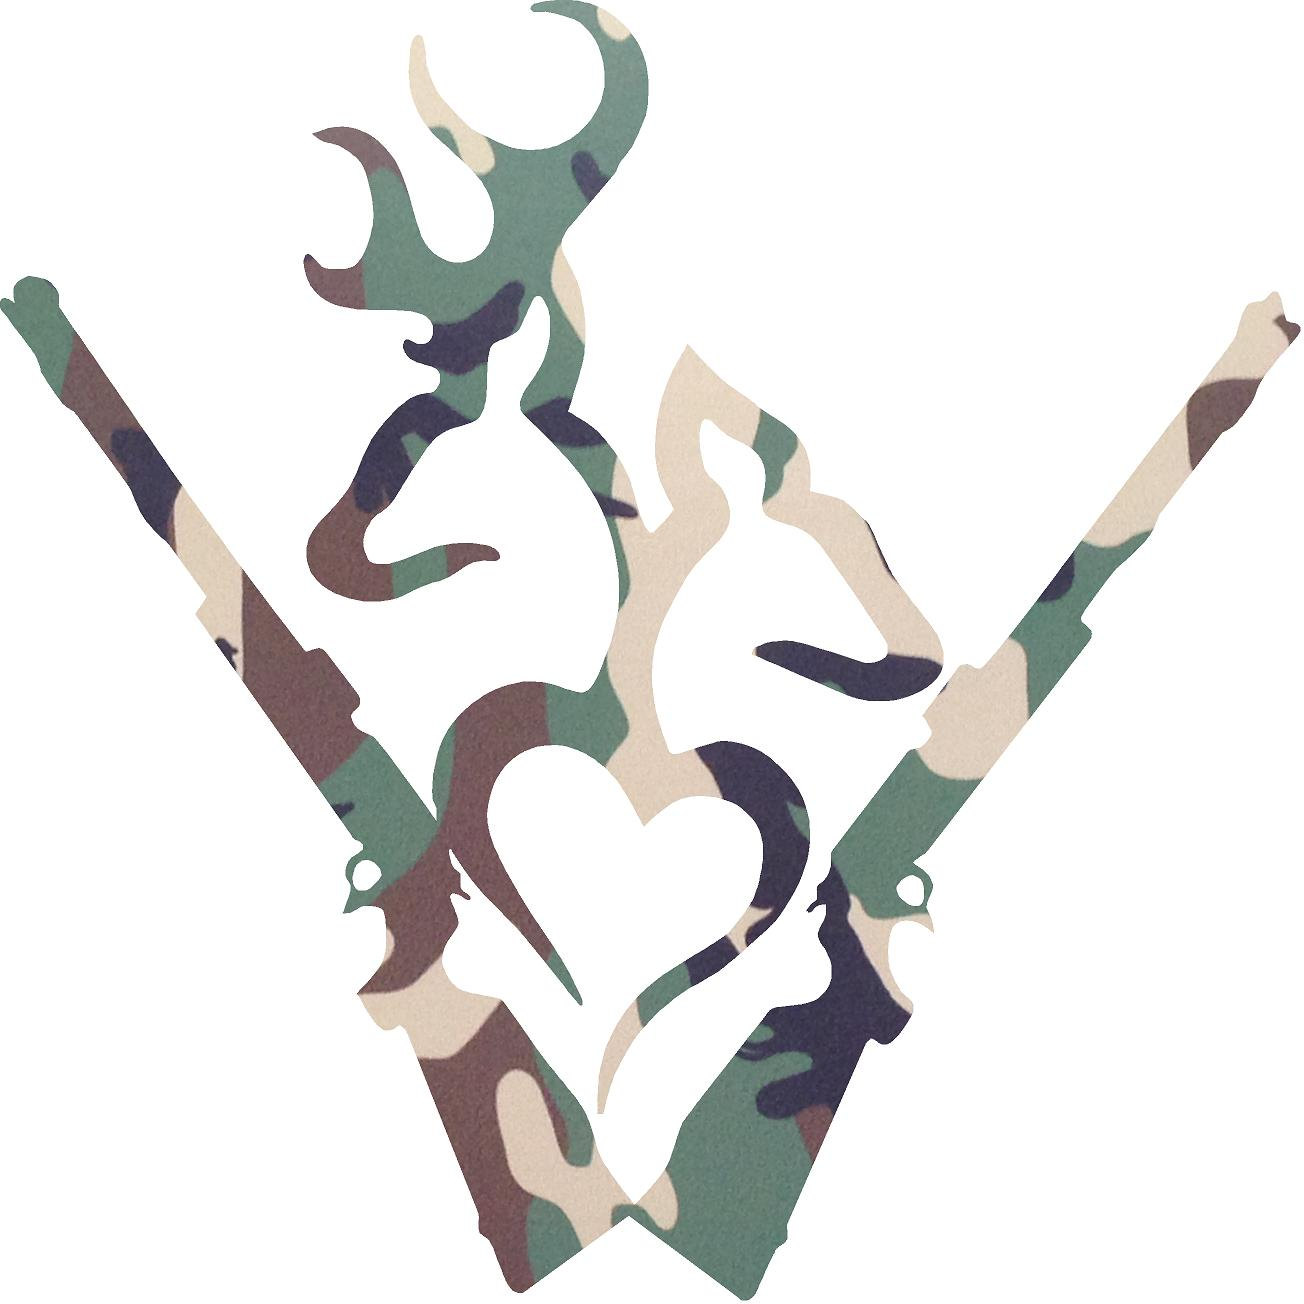 1304x1304 Collection Of Camo Heart Clipart High Quality, Free Cliparts